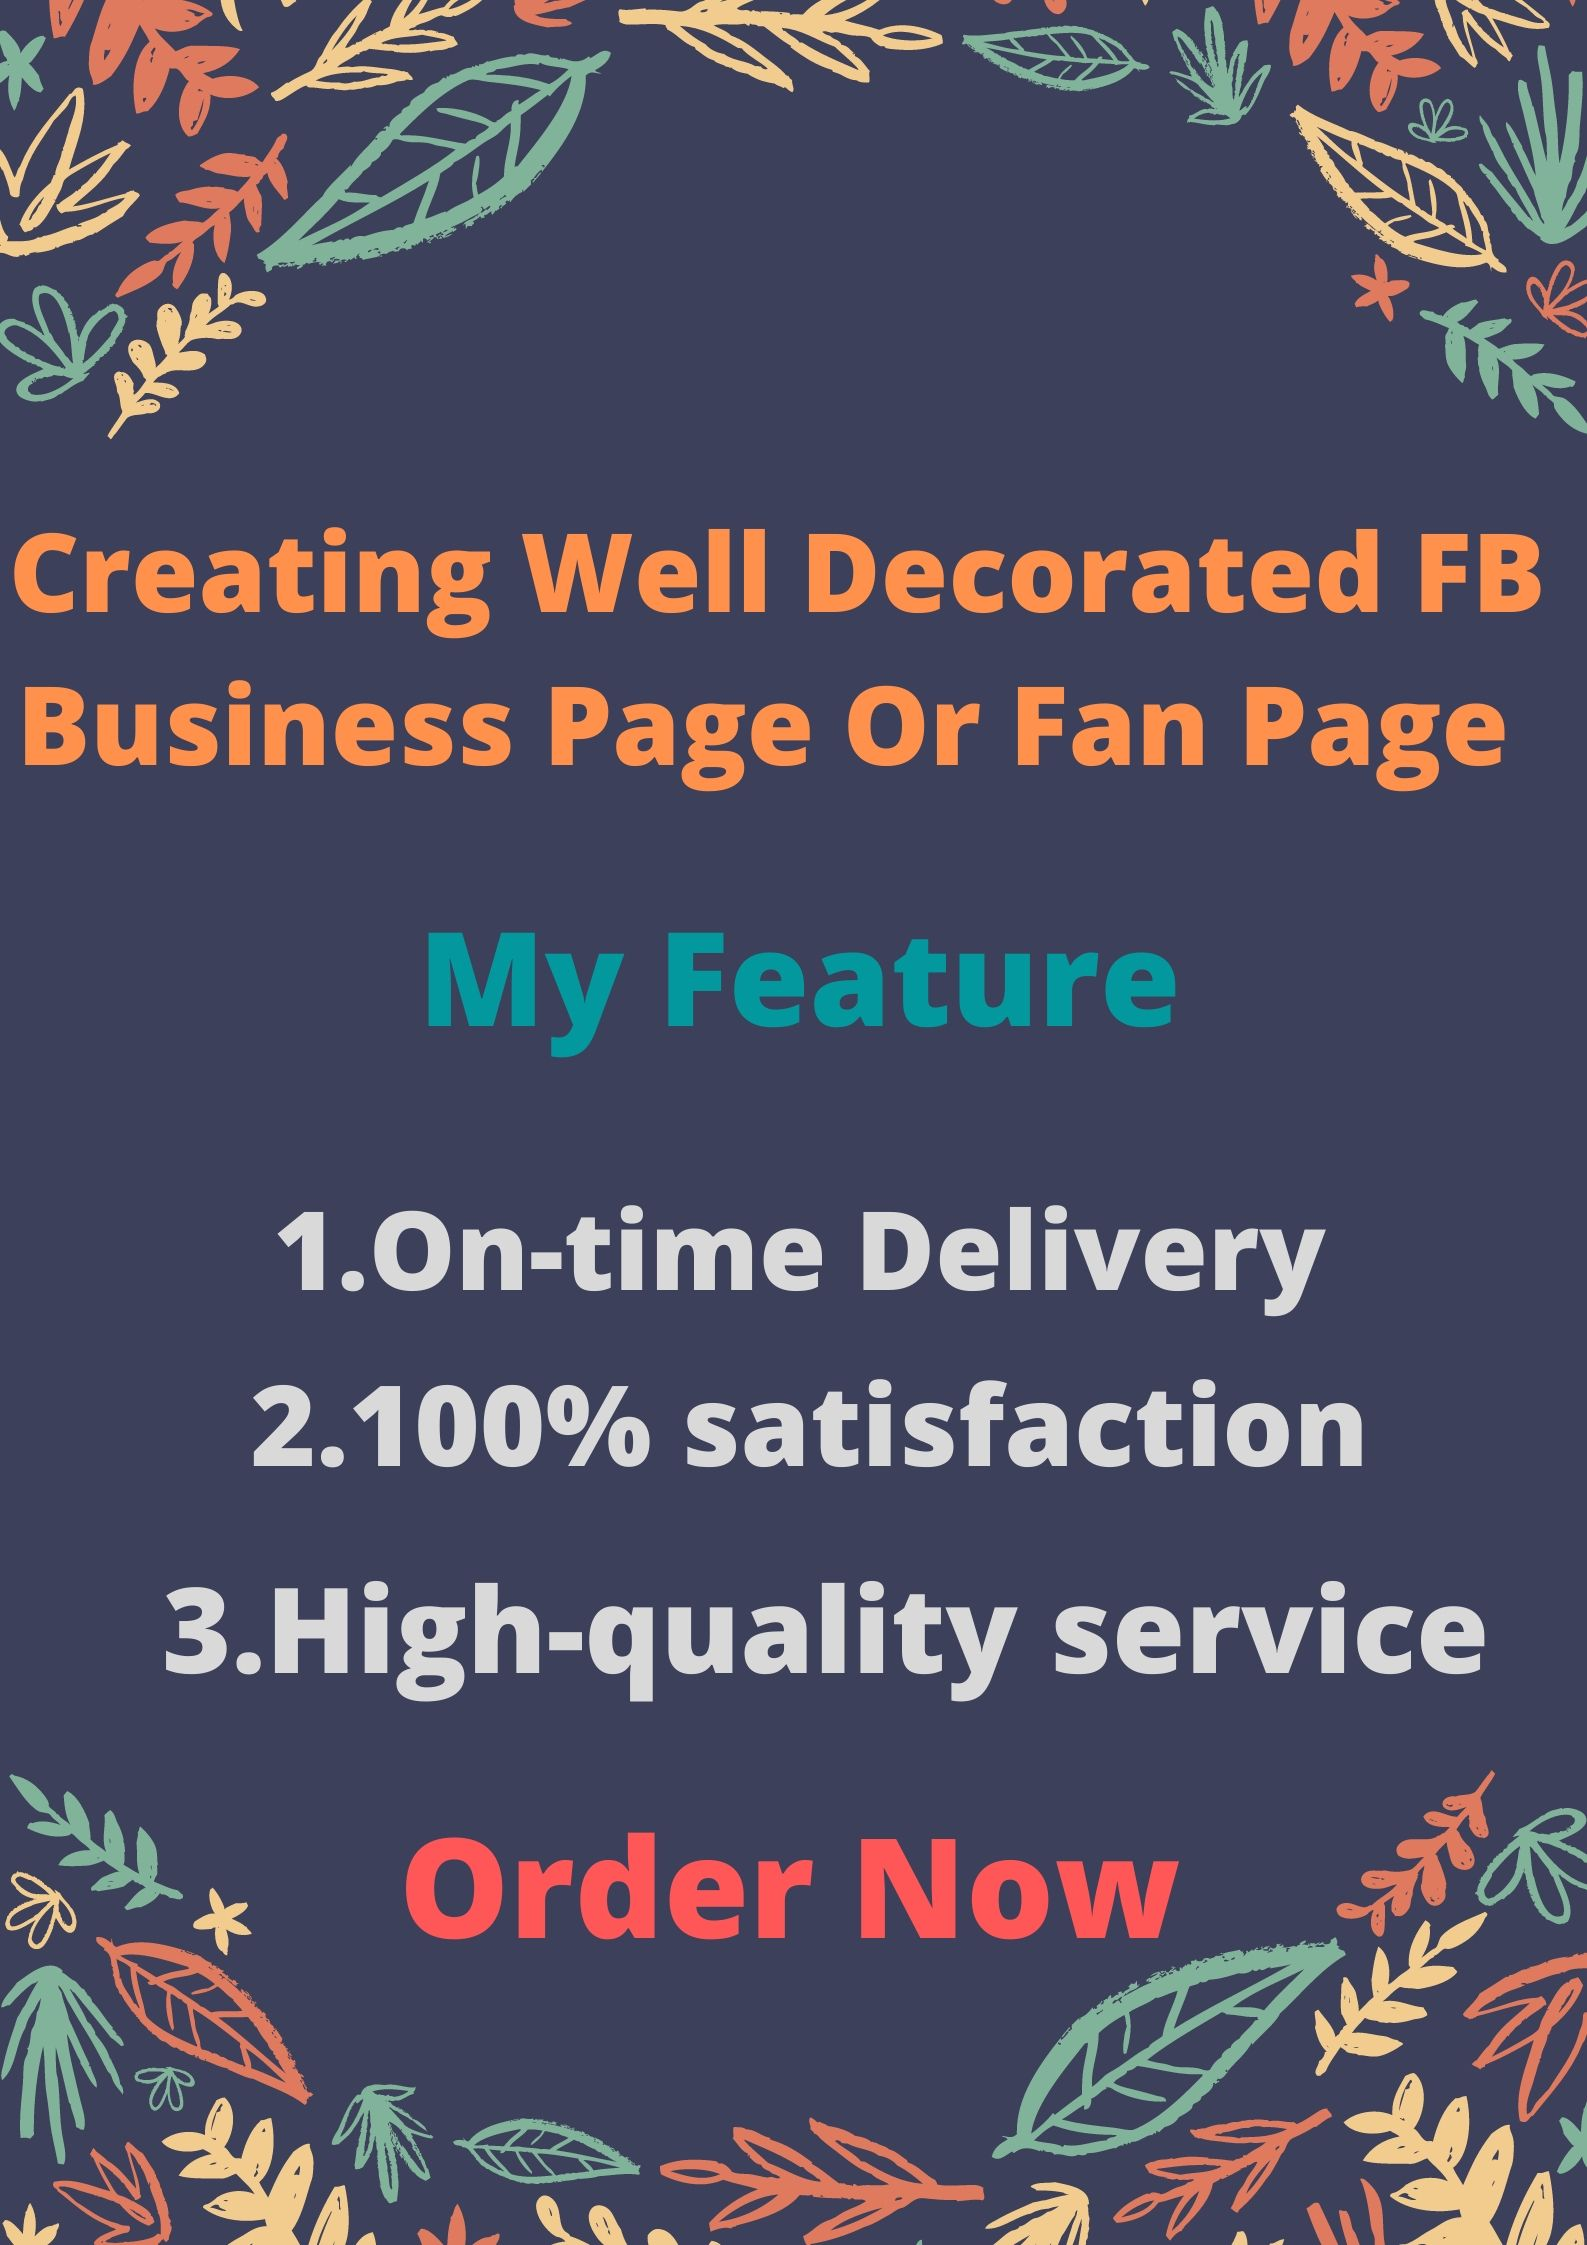 Creating Well Decorated F.B. Business Page